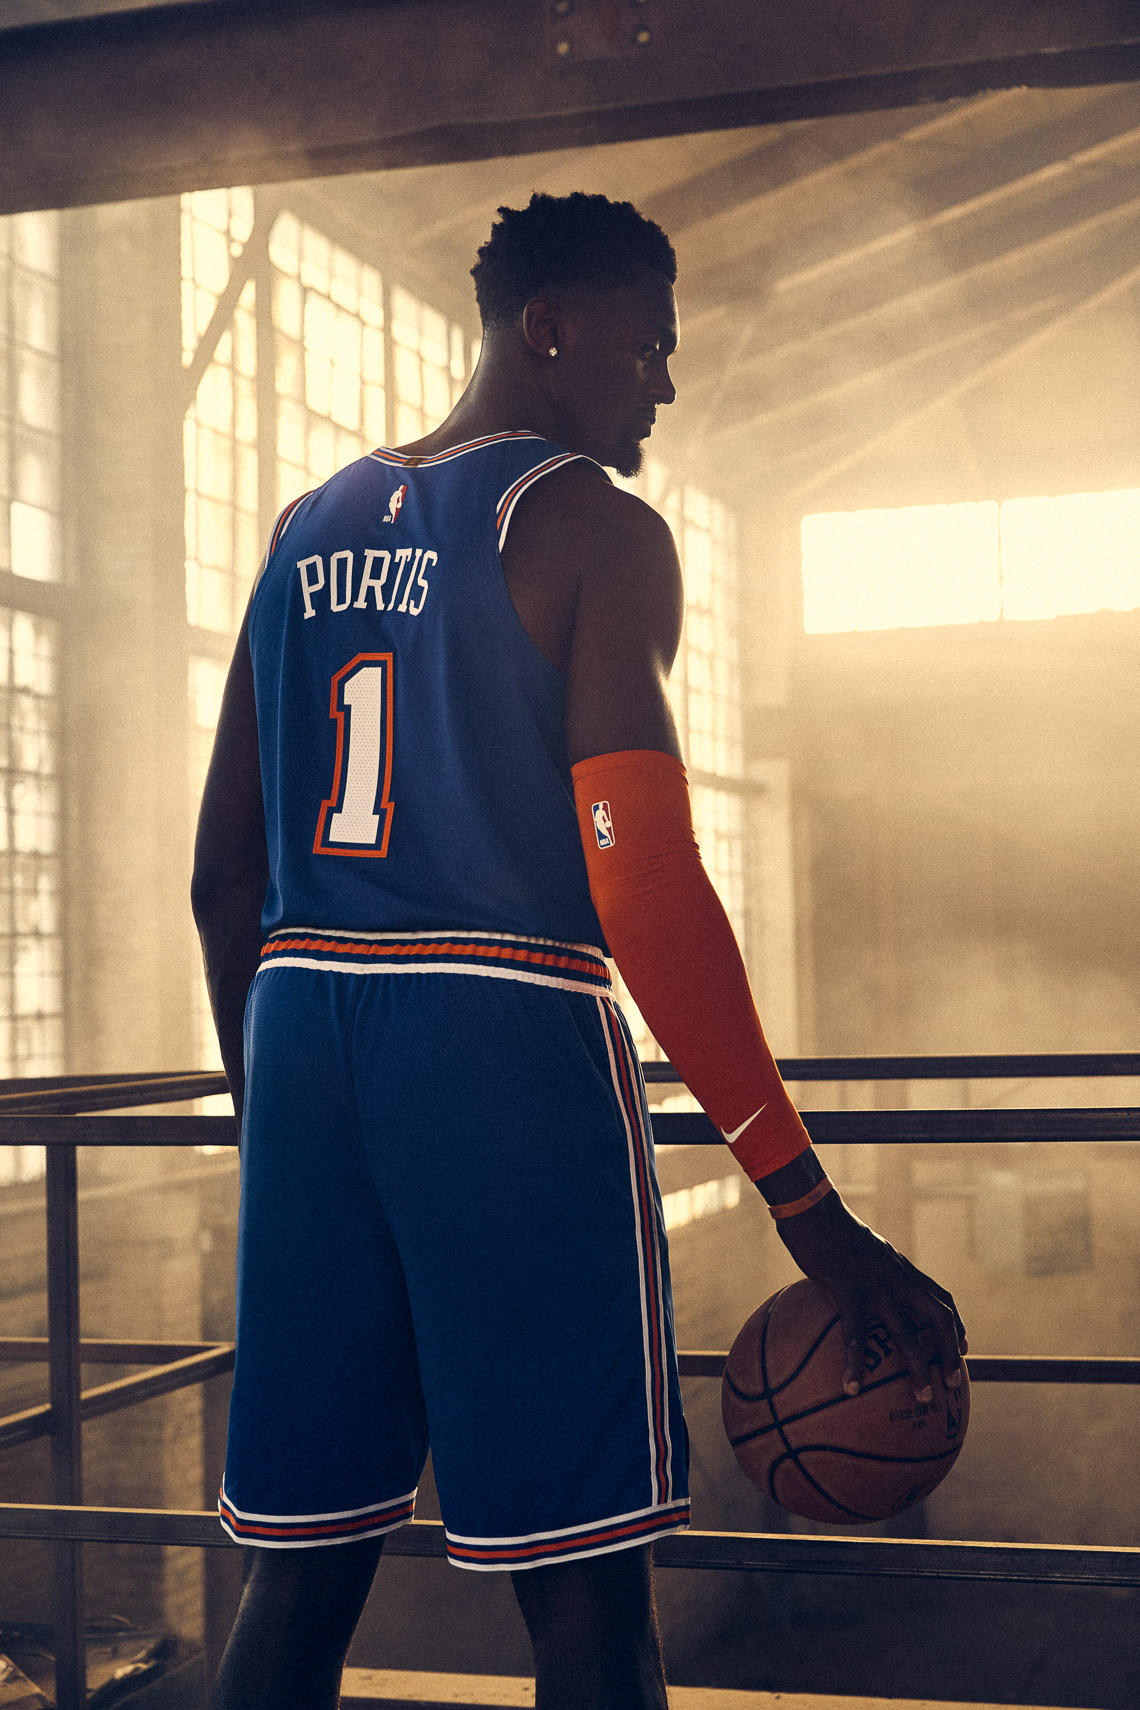 Athletes_Knicks_02